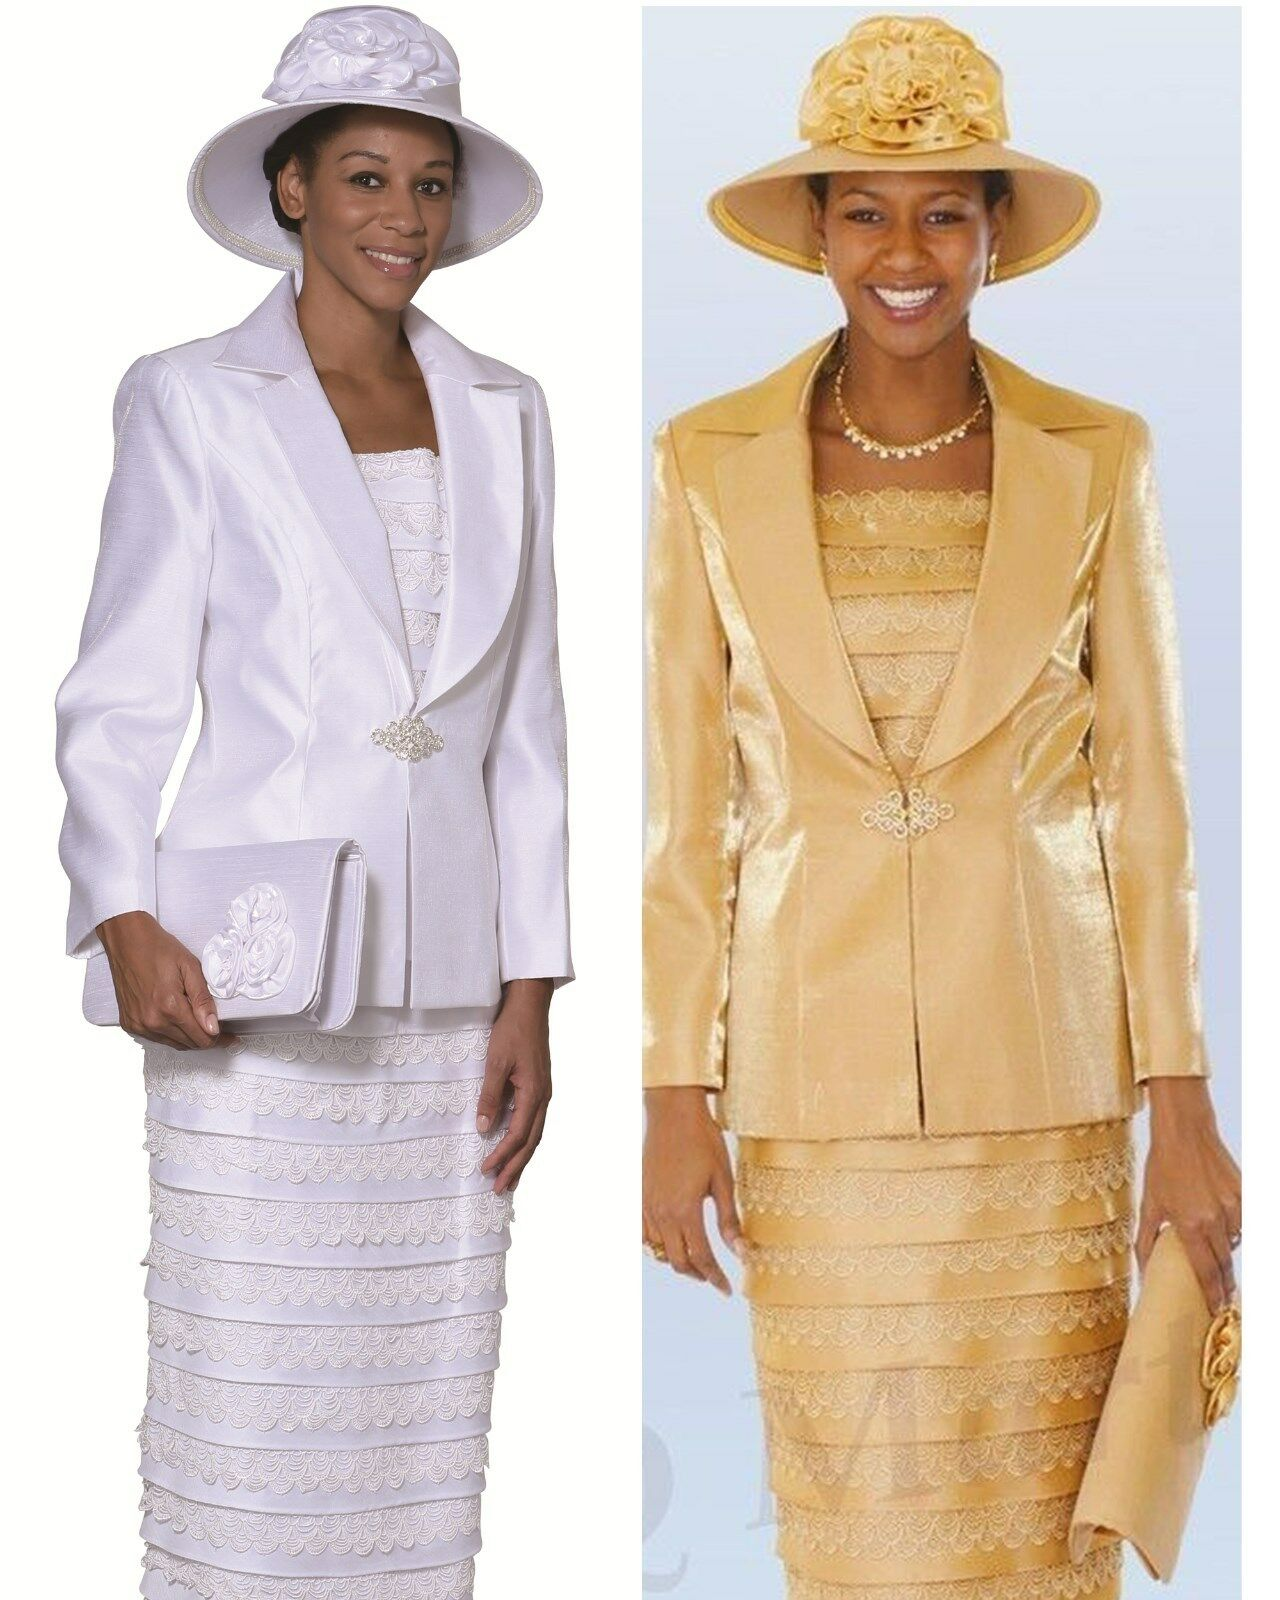 New lynda's Lady Women Dress /Church Suits 3 piece set ...